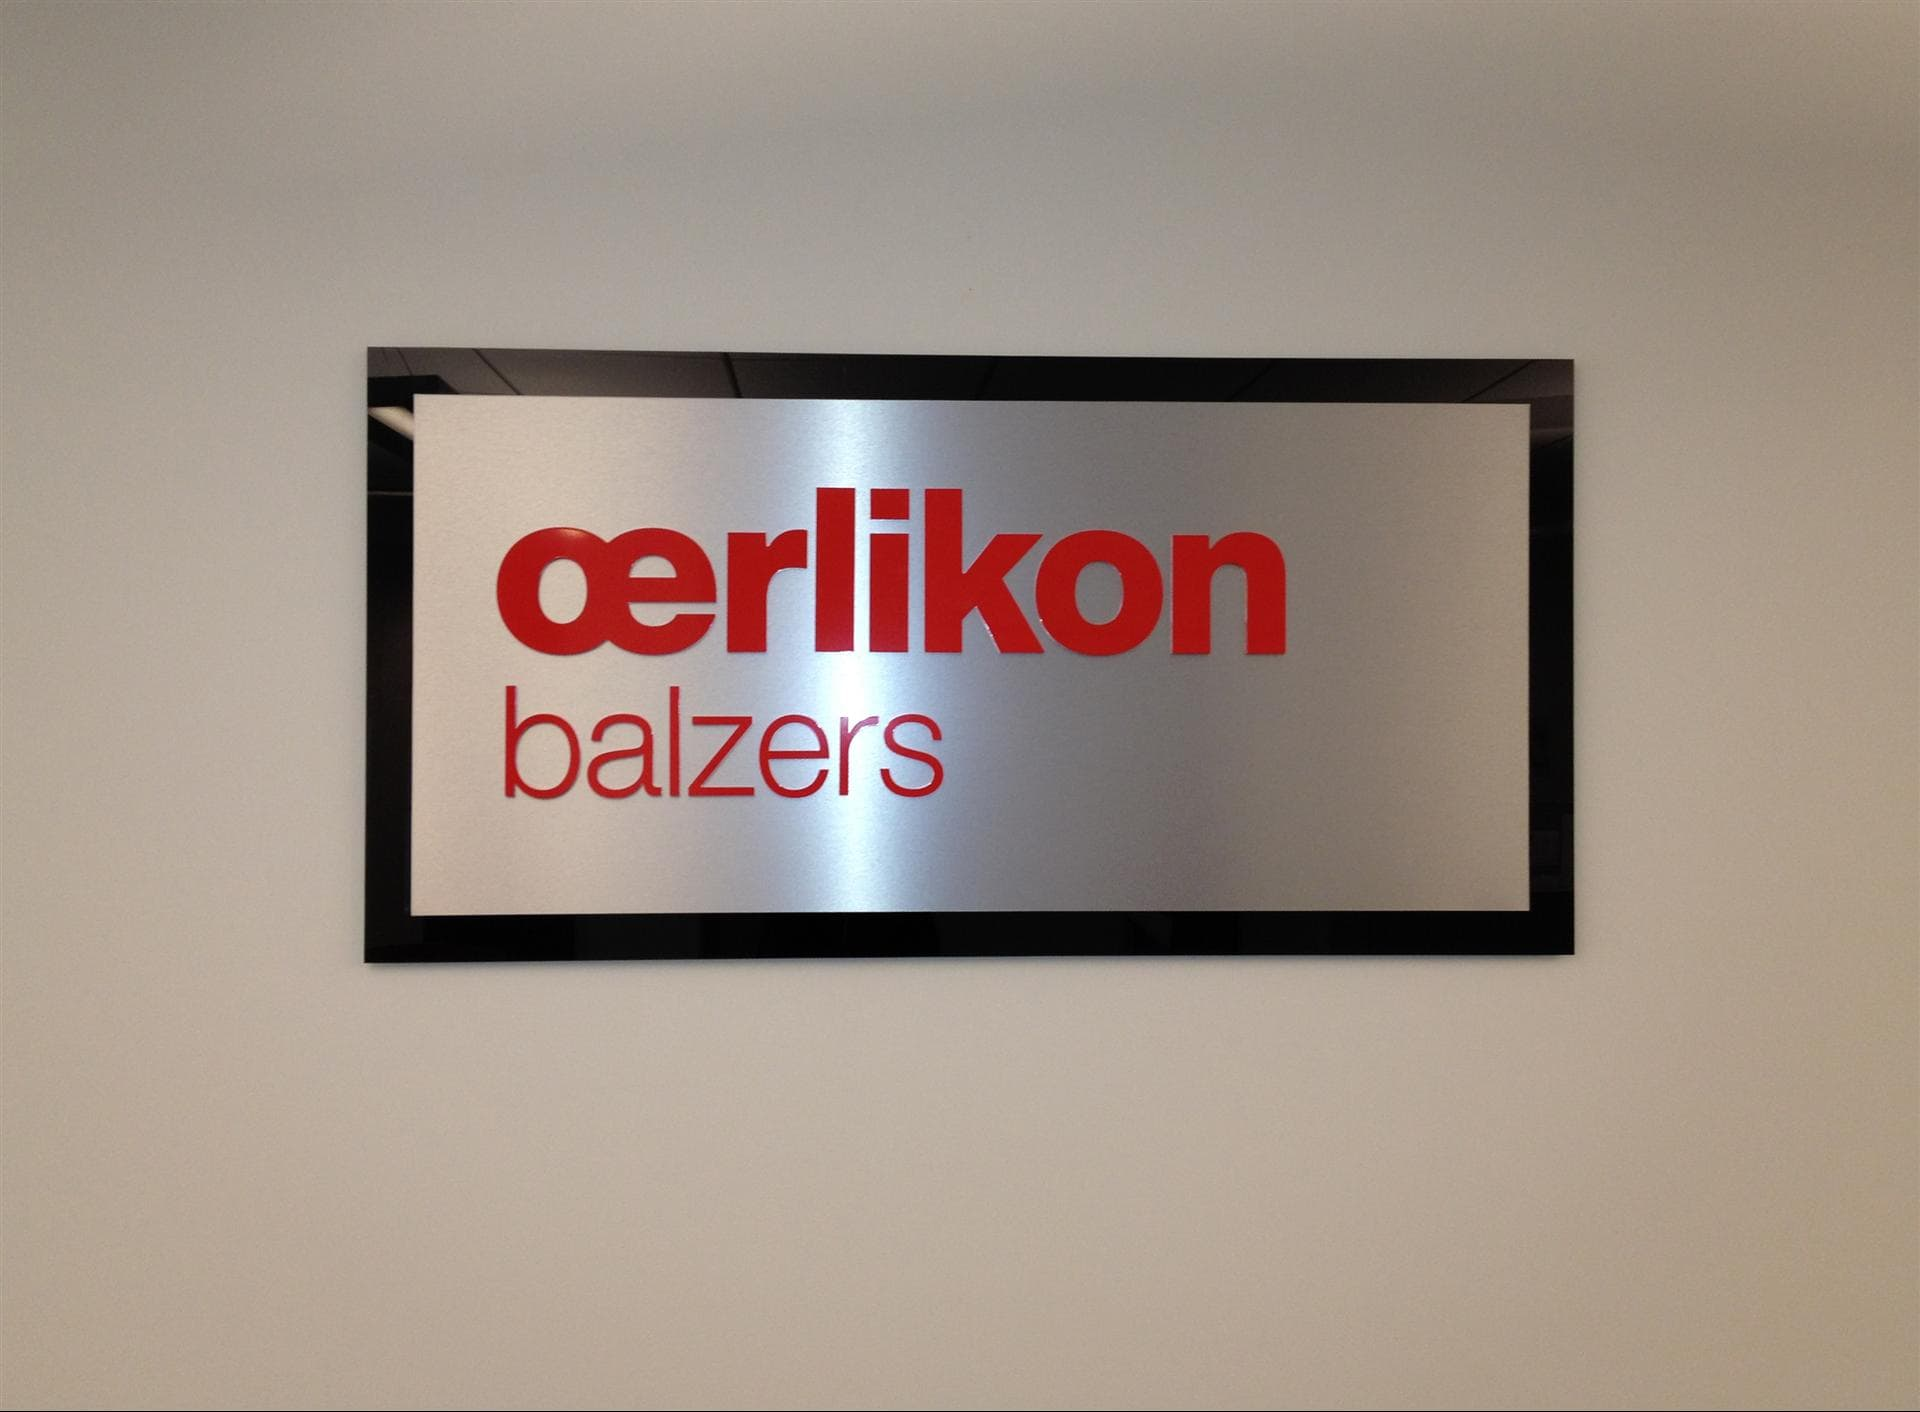 Oerlikon balzers Wall Sign